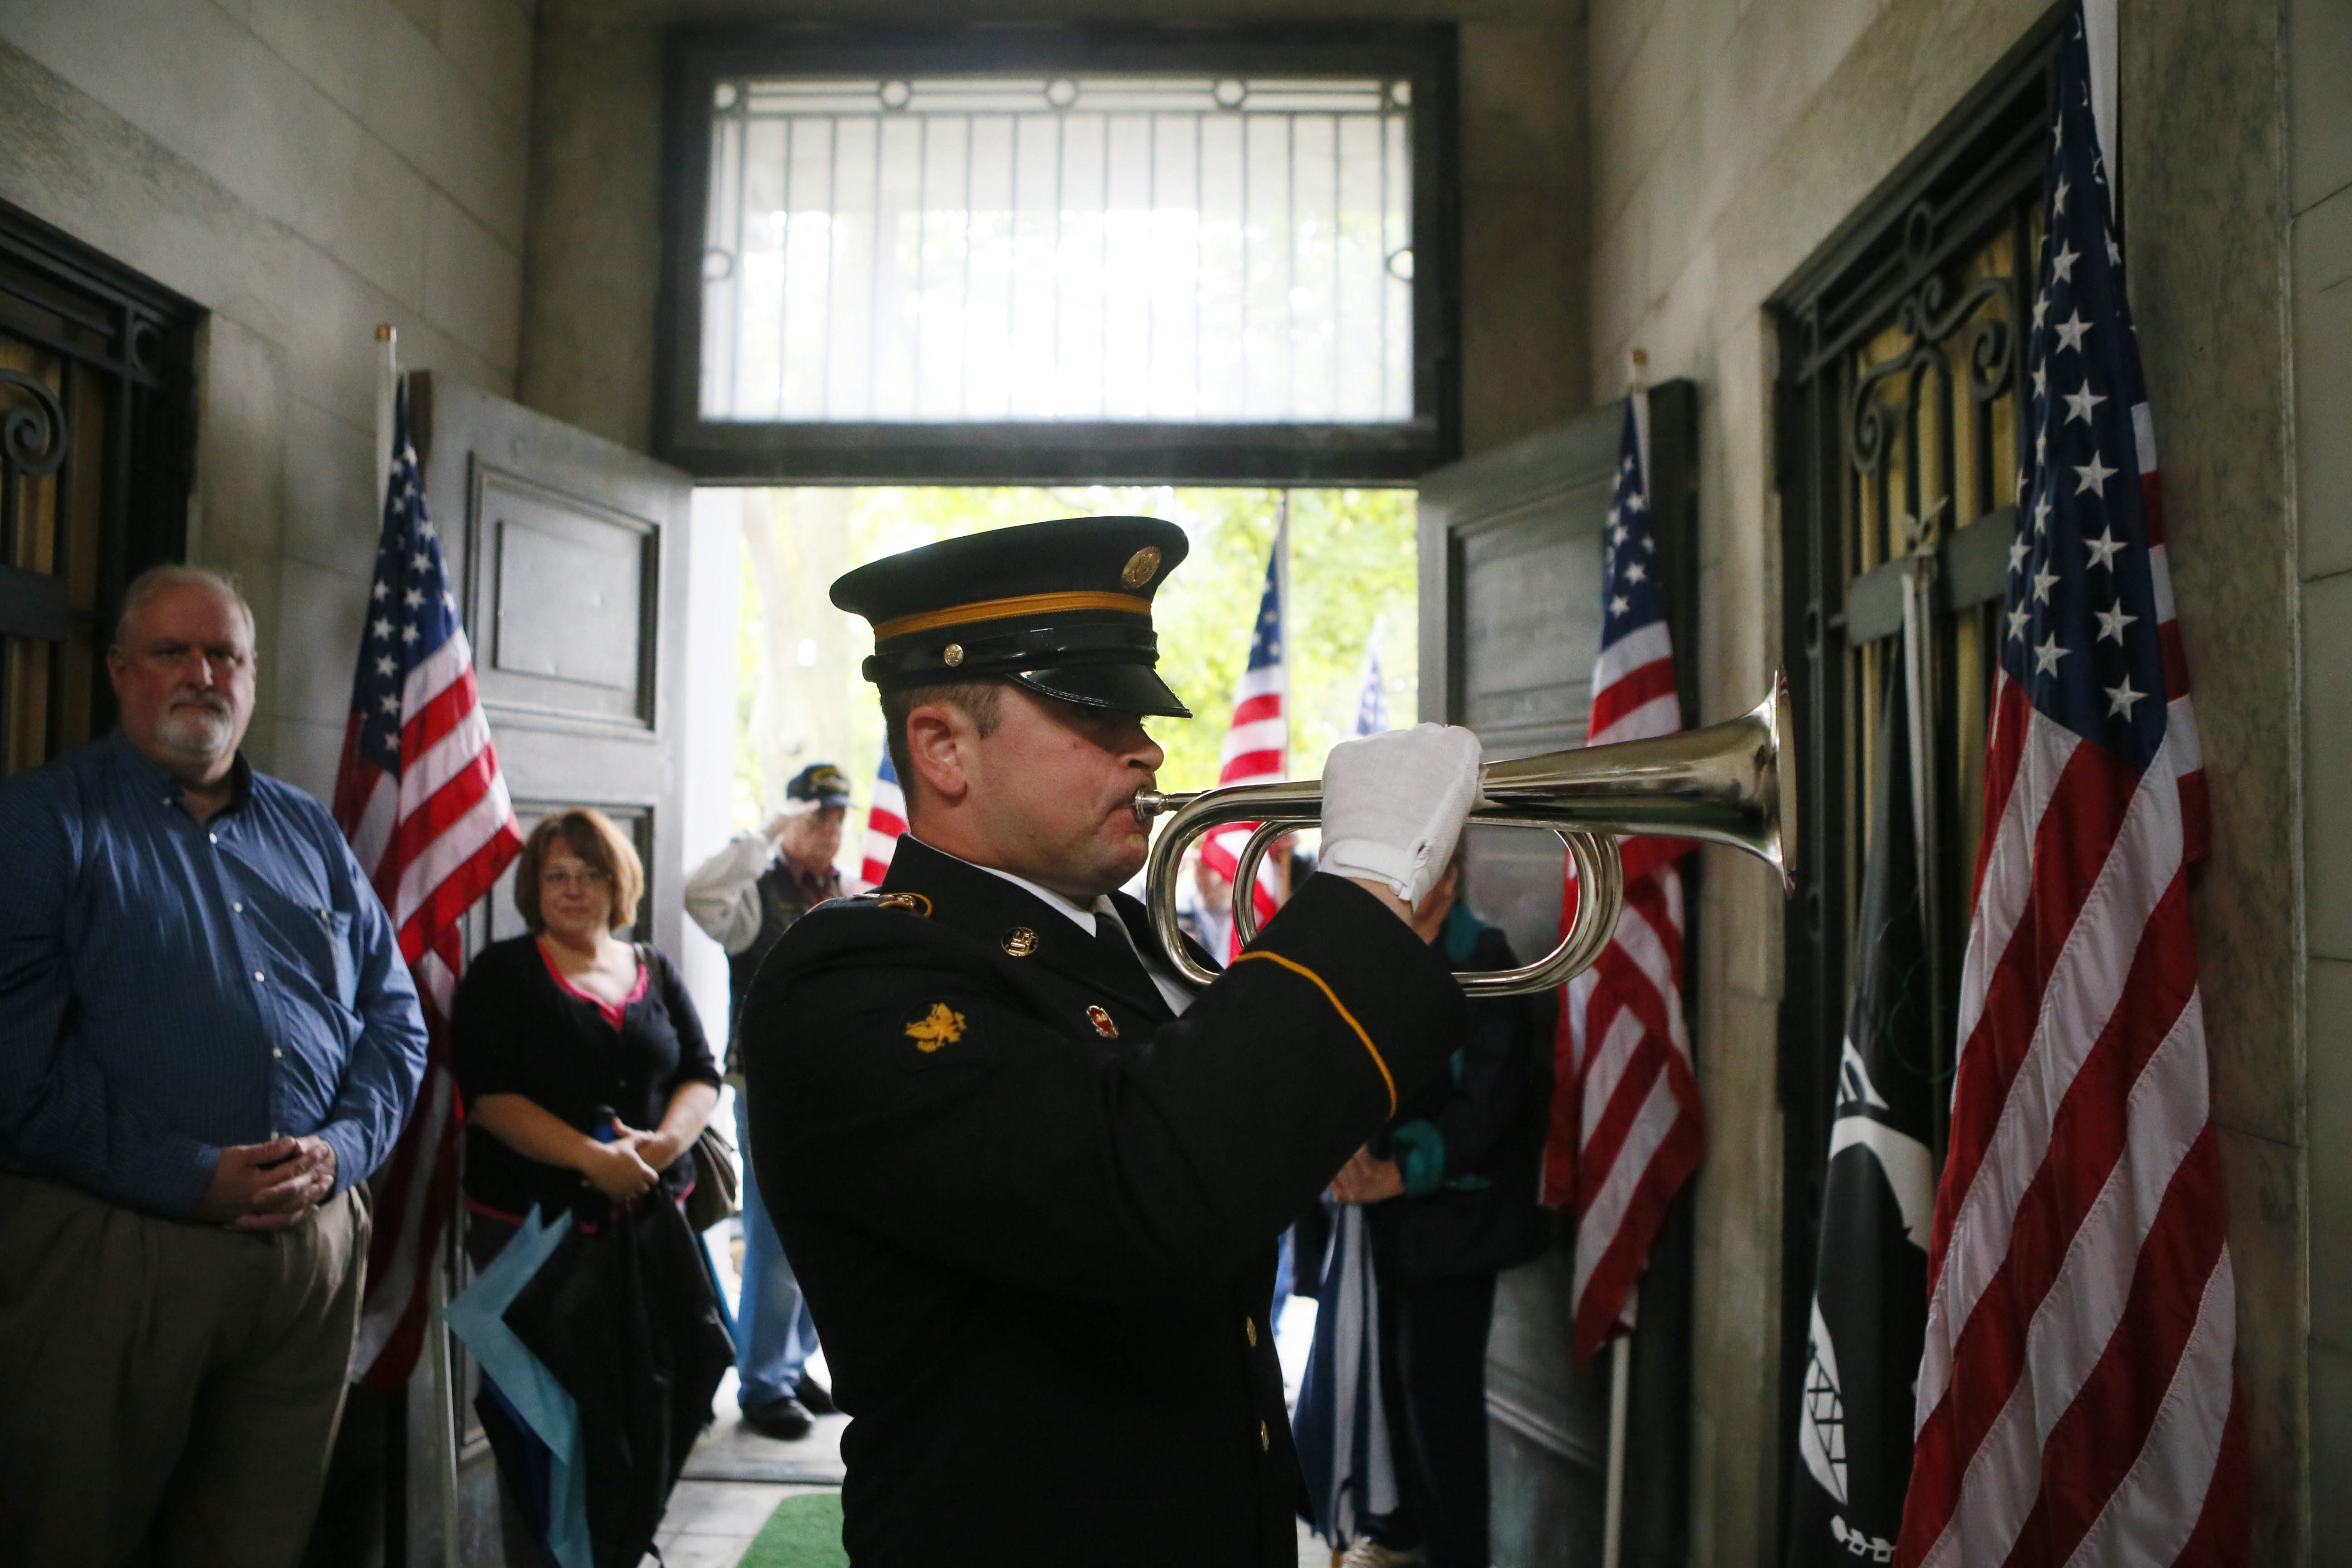 Spc. Phil Rosati of the honor guard plays taps during a remembrance event for Capt. William C. Glasgow, a highly decorated fighter pilot and POW in World War II who was killed at age 27 in crash of his experimental plane at Ohio air show in 1945.